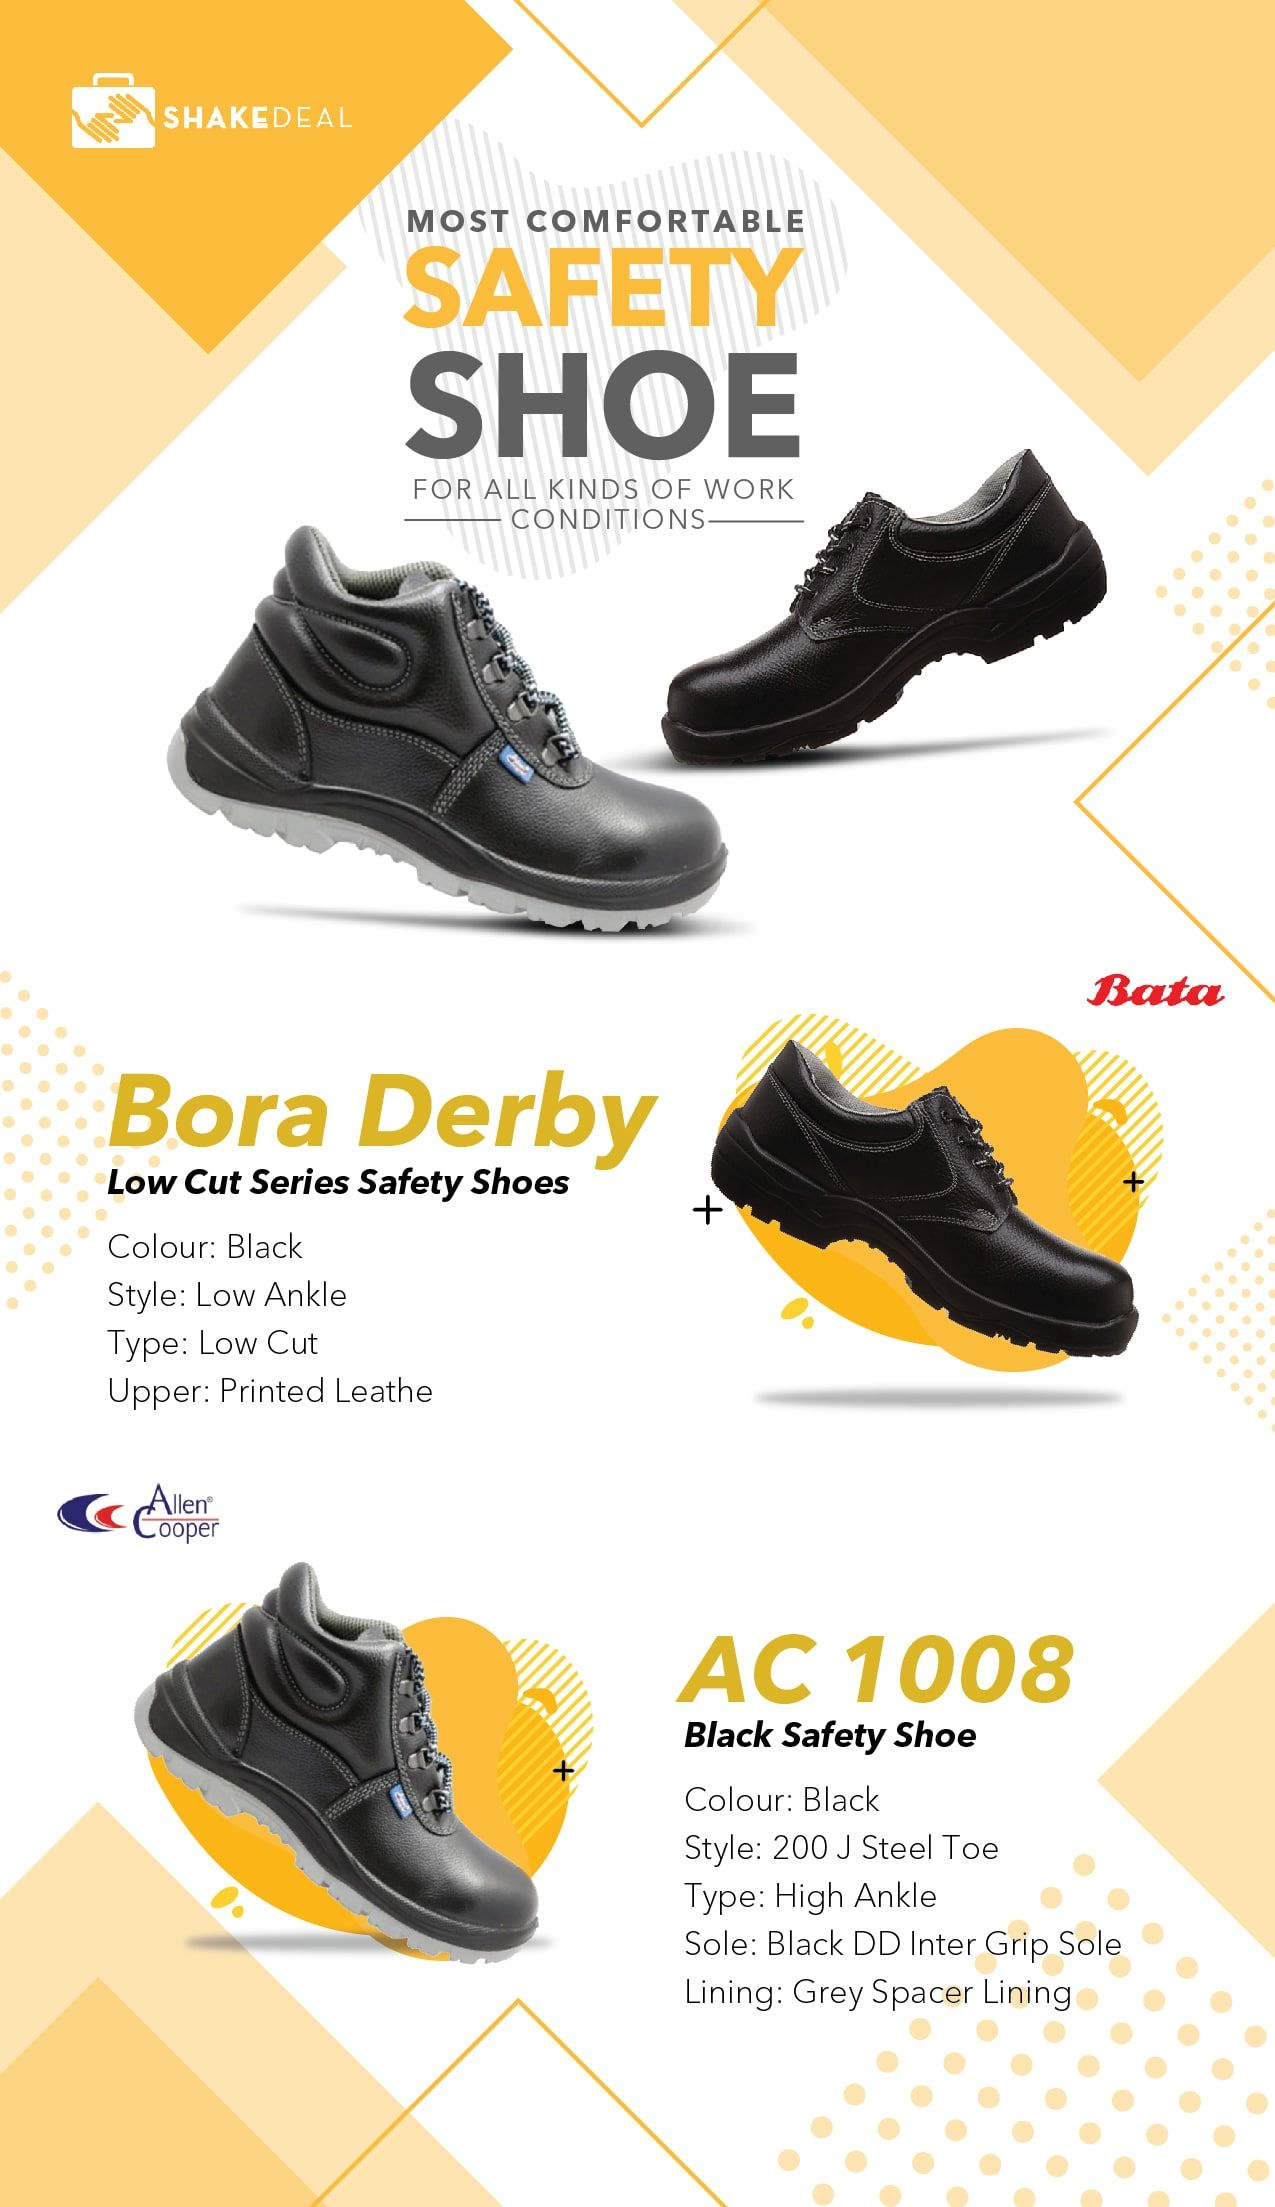 Most Comfortable Safety Shoes for all Kind of Work